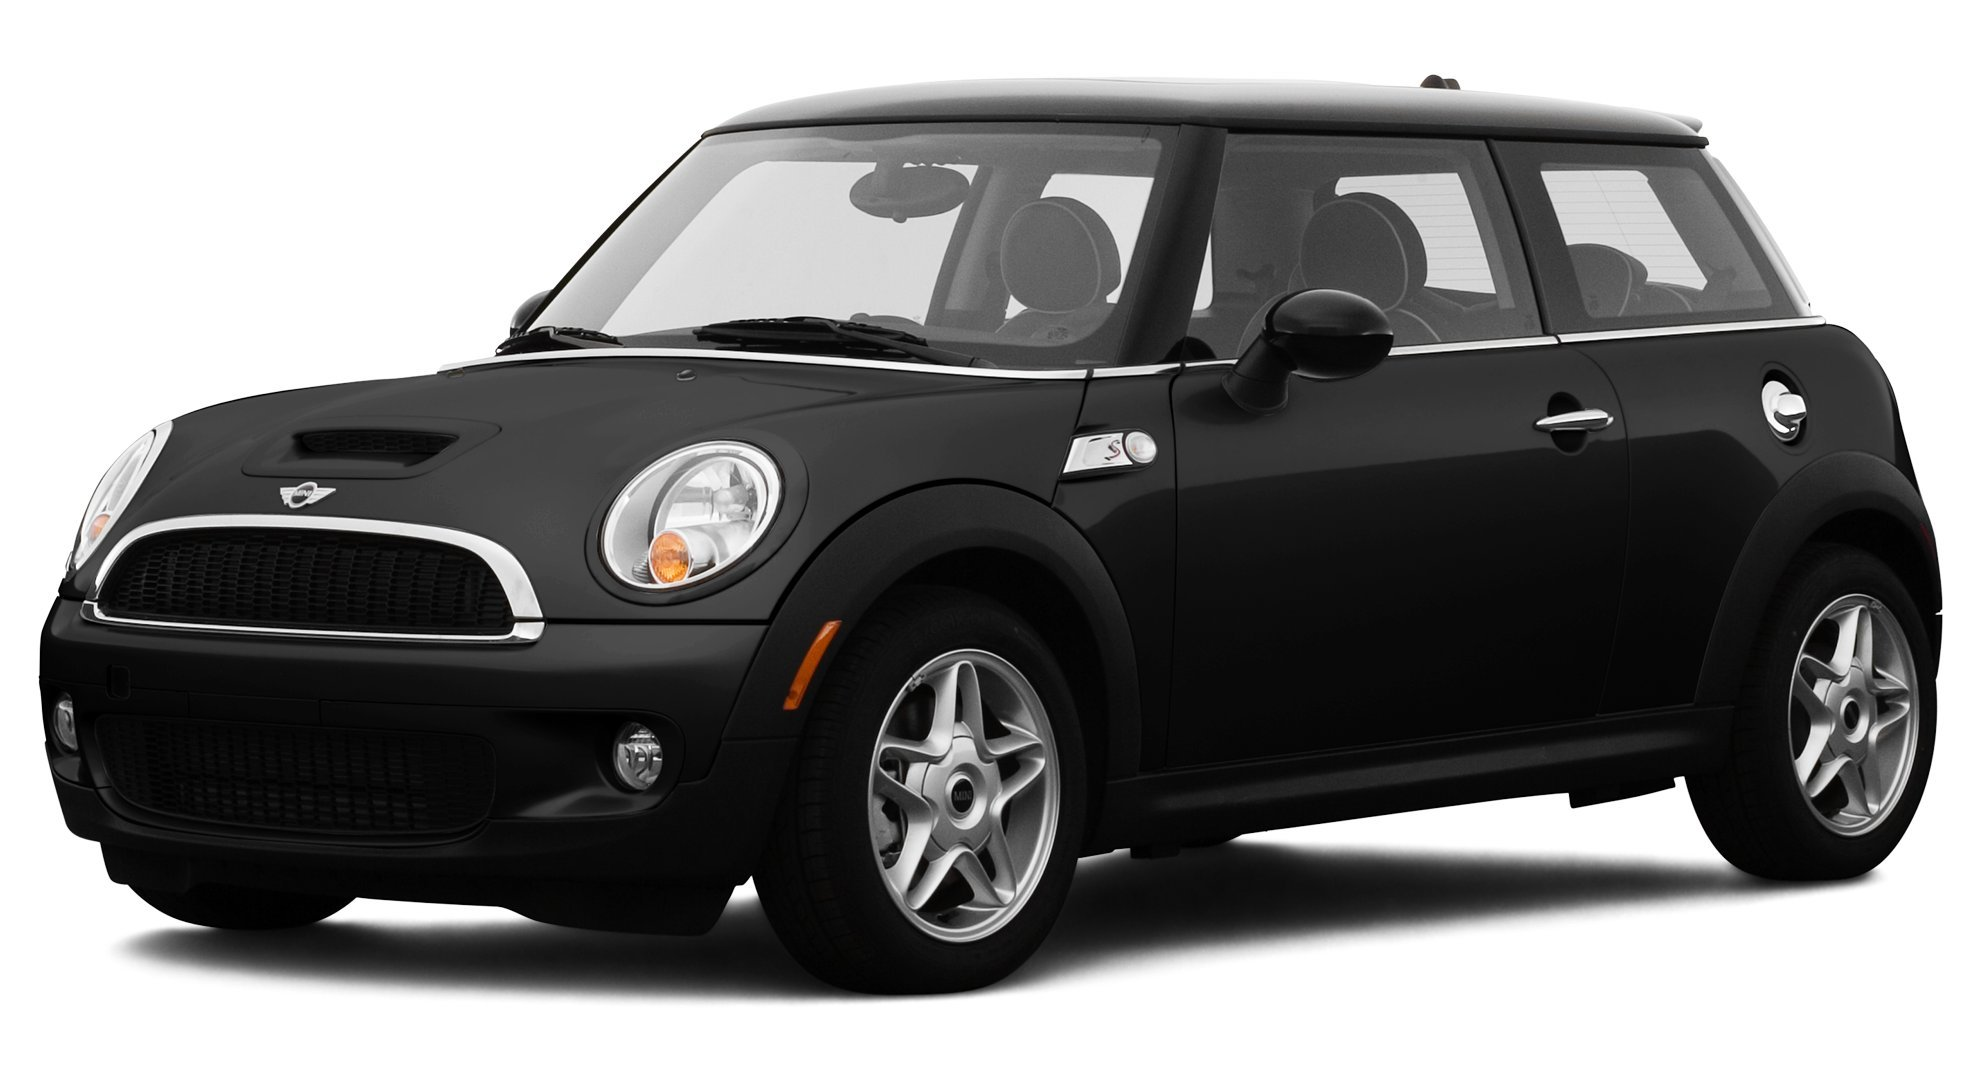 ... Manual Transmission, 2007 Mini Cooper S, 2-Door. 2007 Mitsubishi Eclipse  ...